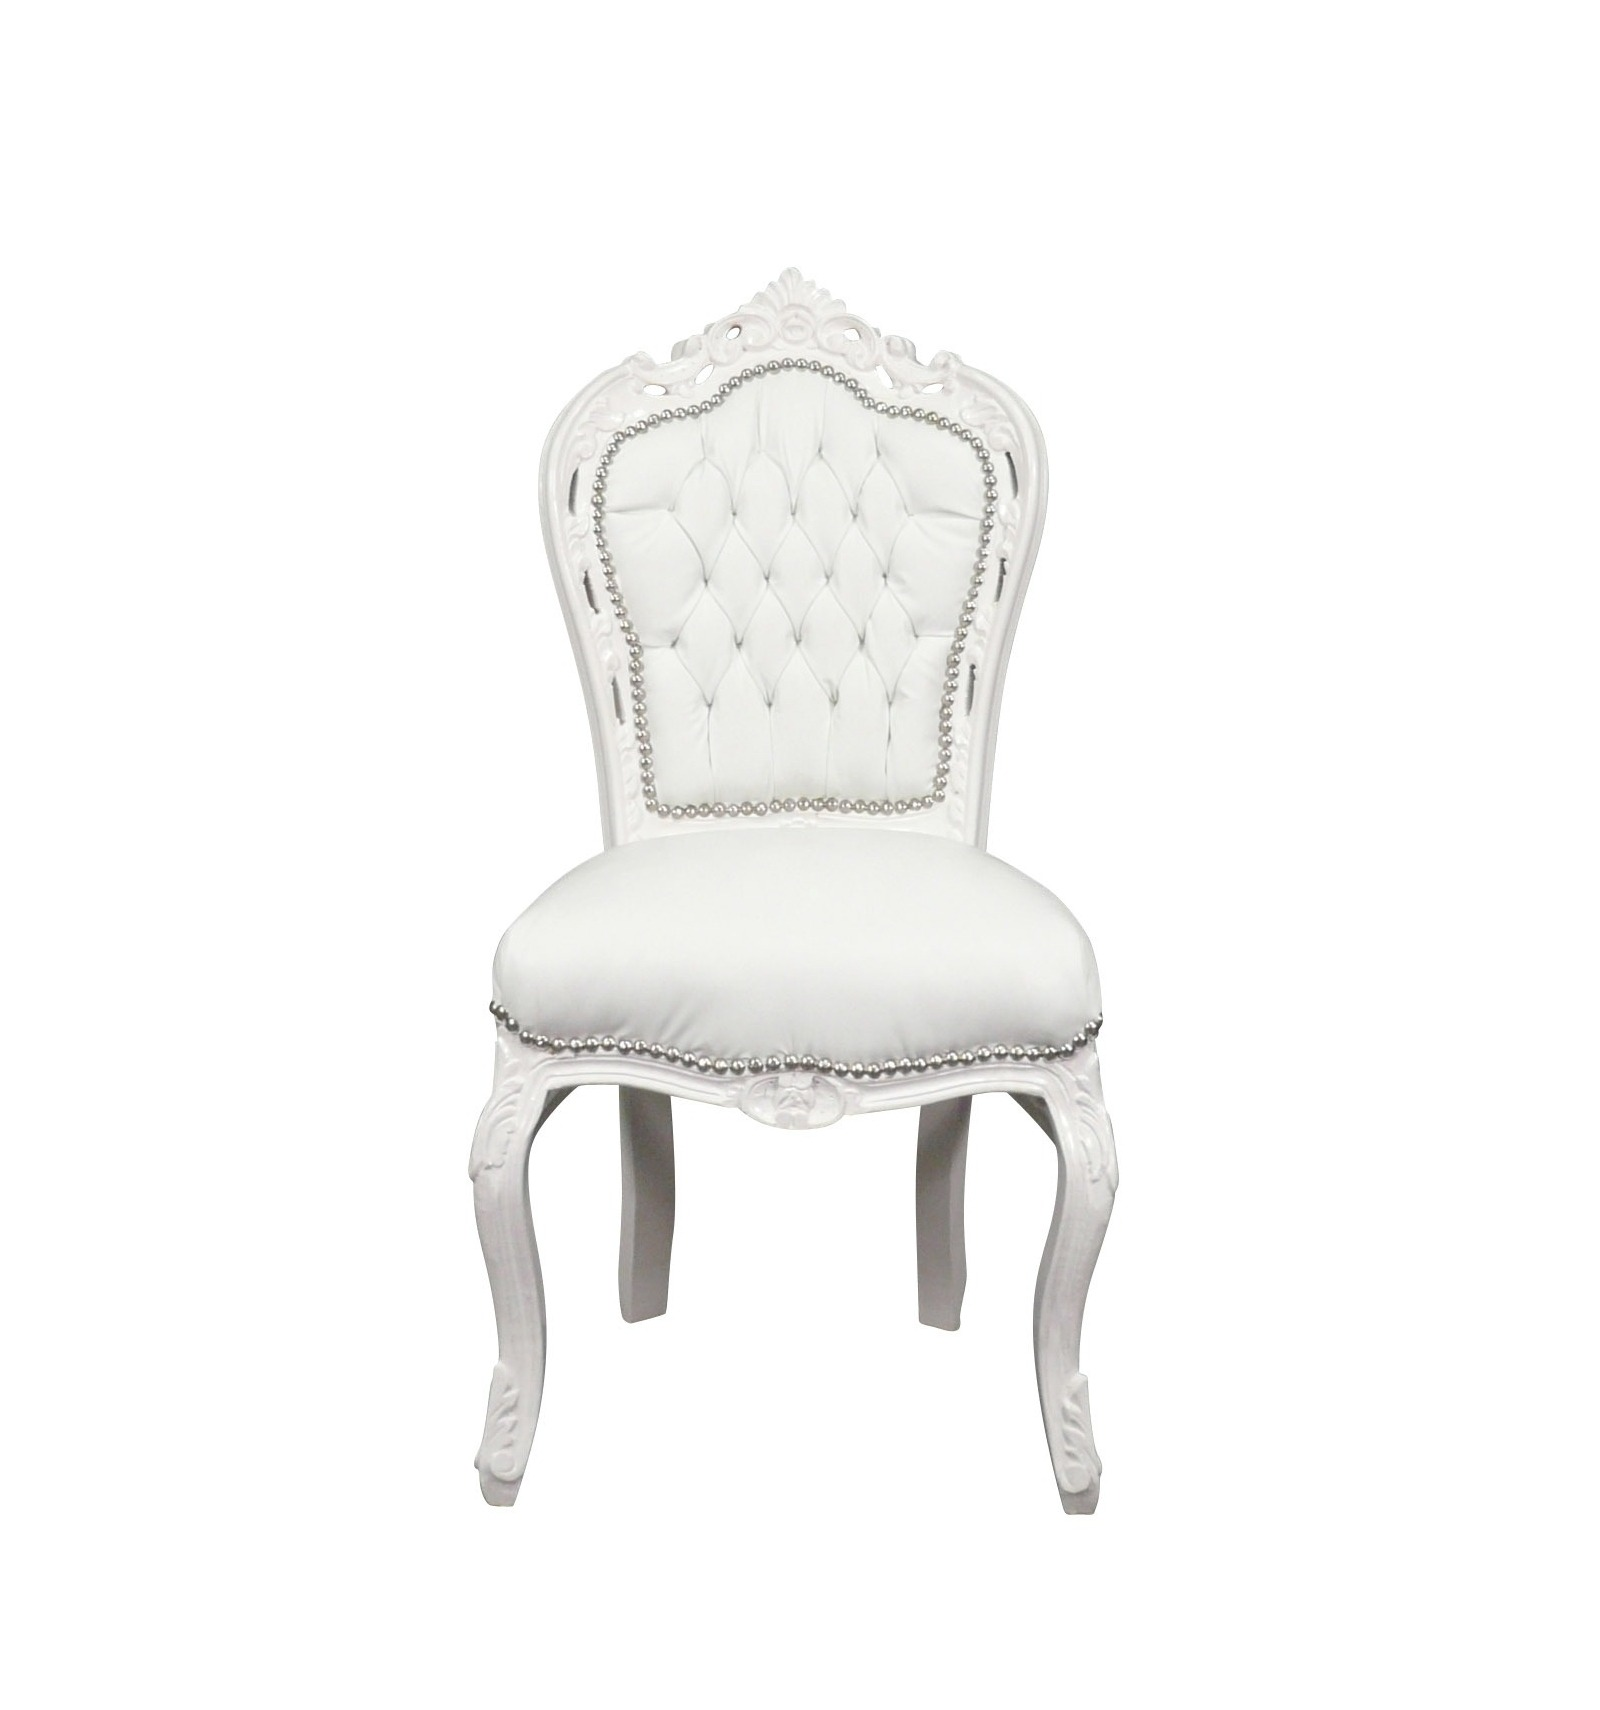 Chaise Blanche Pas Cher Chaise Baroque Blanche Meubles Baroques Pas Cher